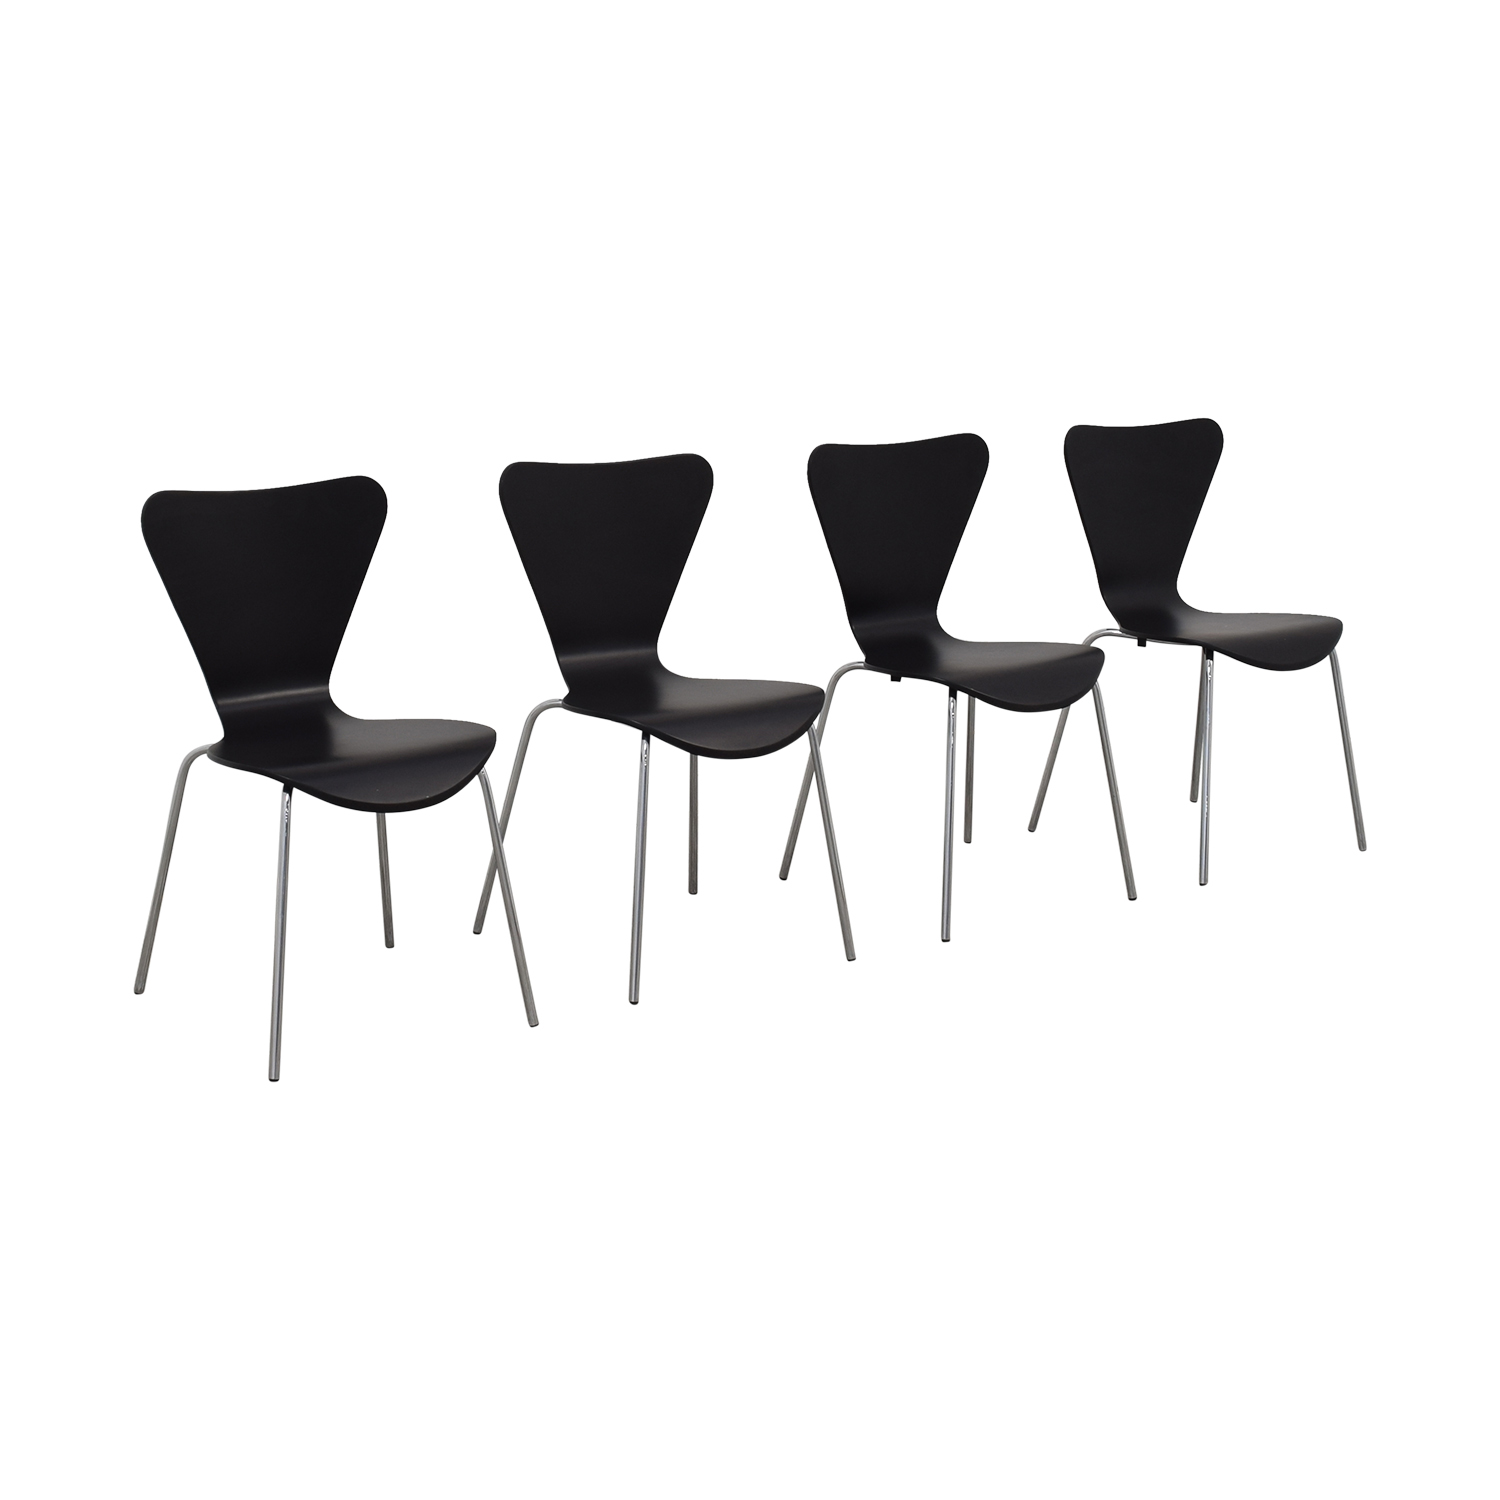 Room & Board Room & Board Black Chairs coupon